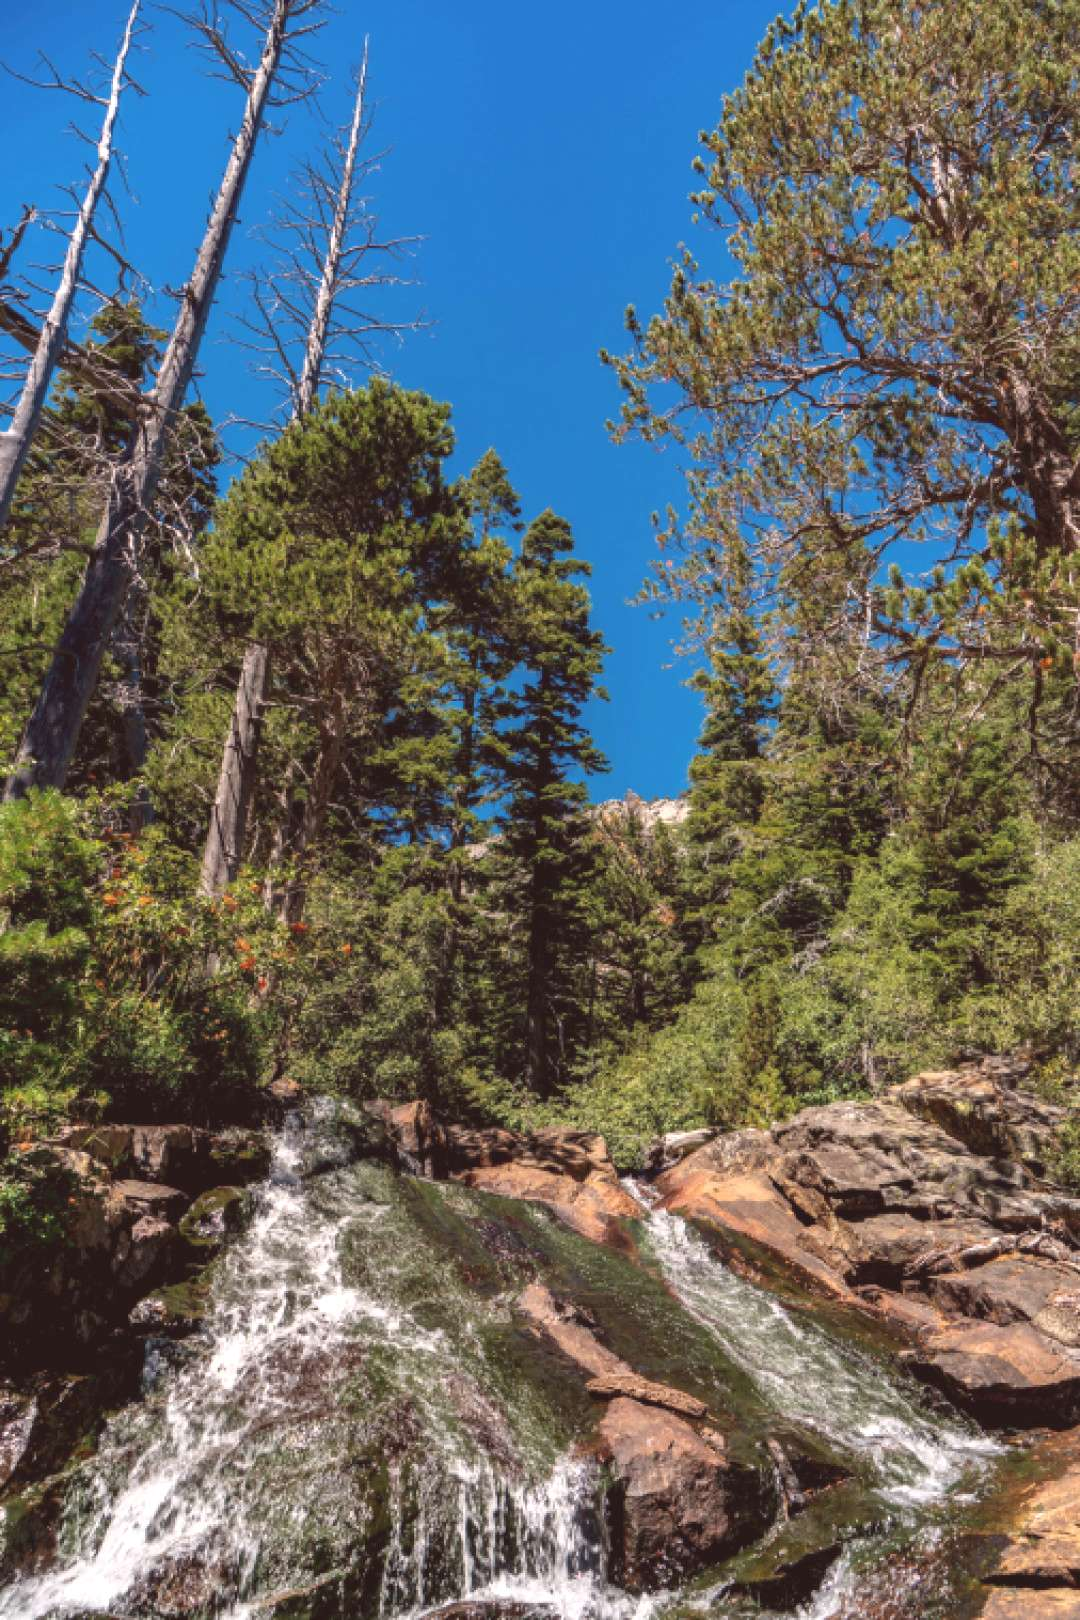 Tahoe Eagle Falls - Lake Tahoe is a great place for hiking even for those who casually hike! Here a